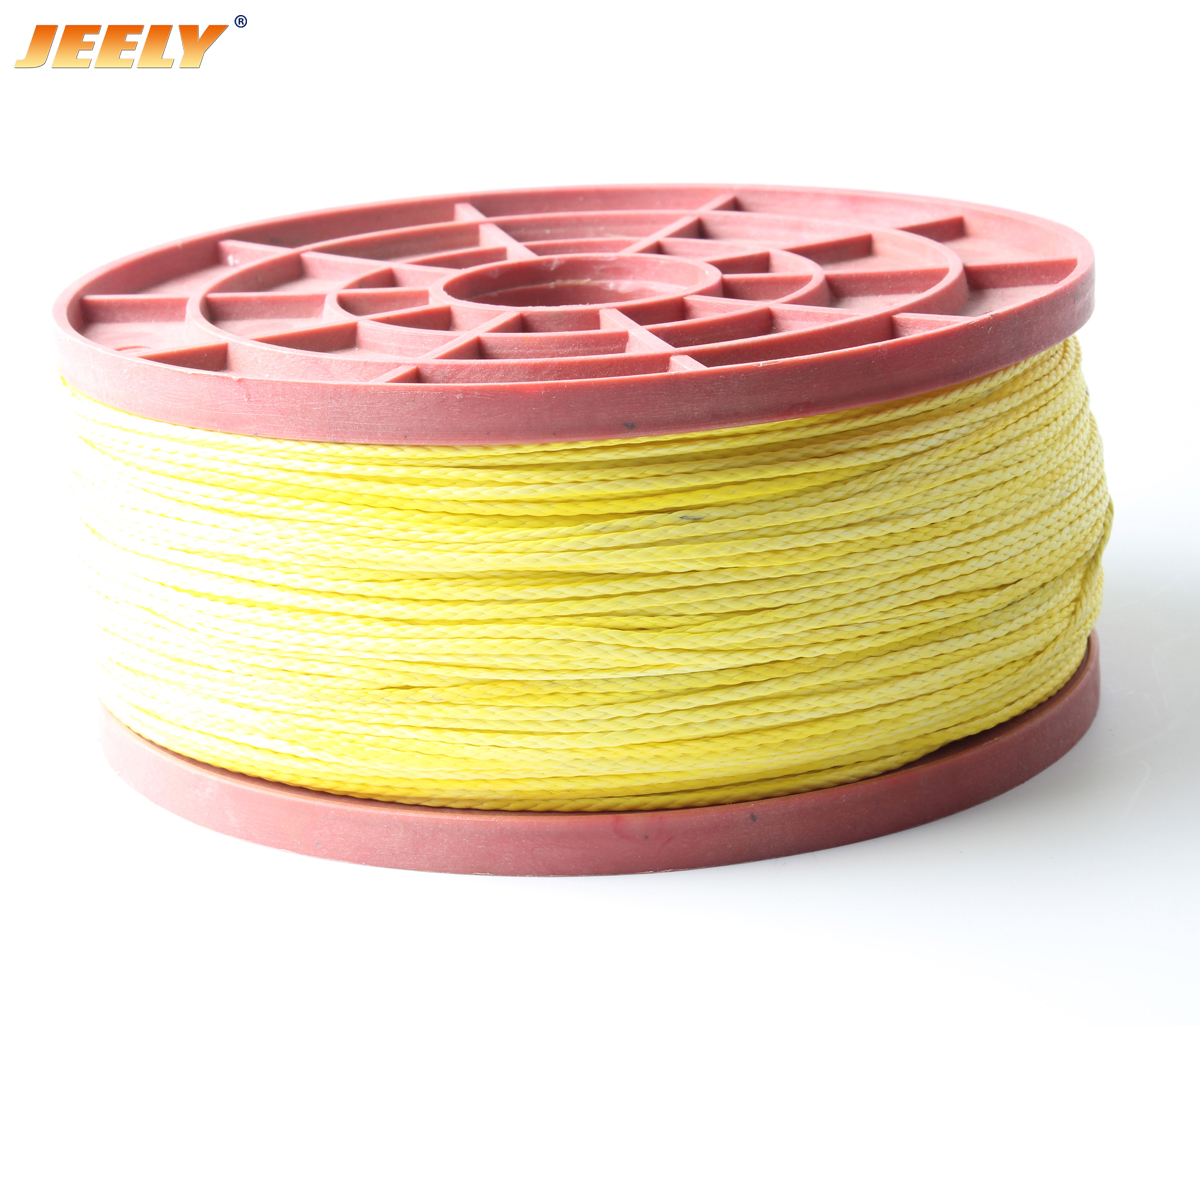 0.6mm Spectra Braided Sport Fishing Lines Rope